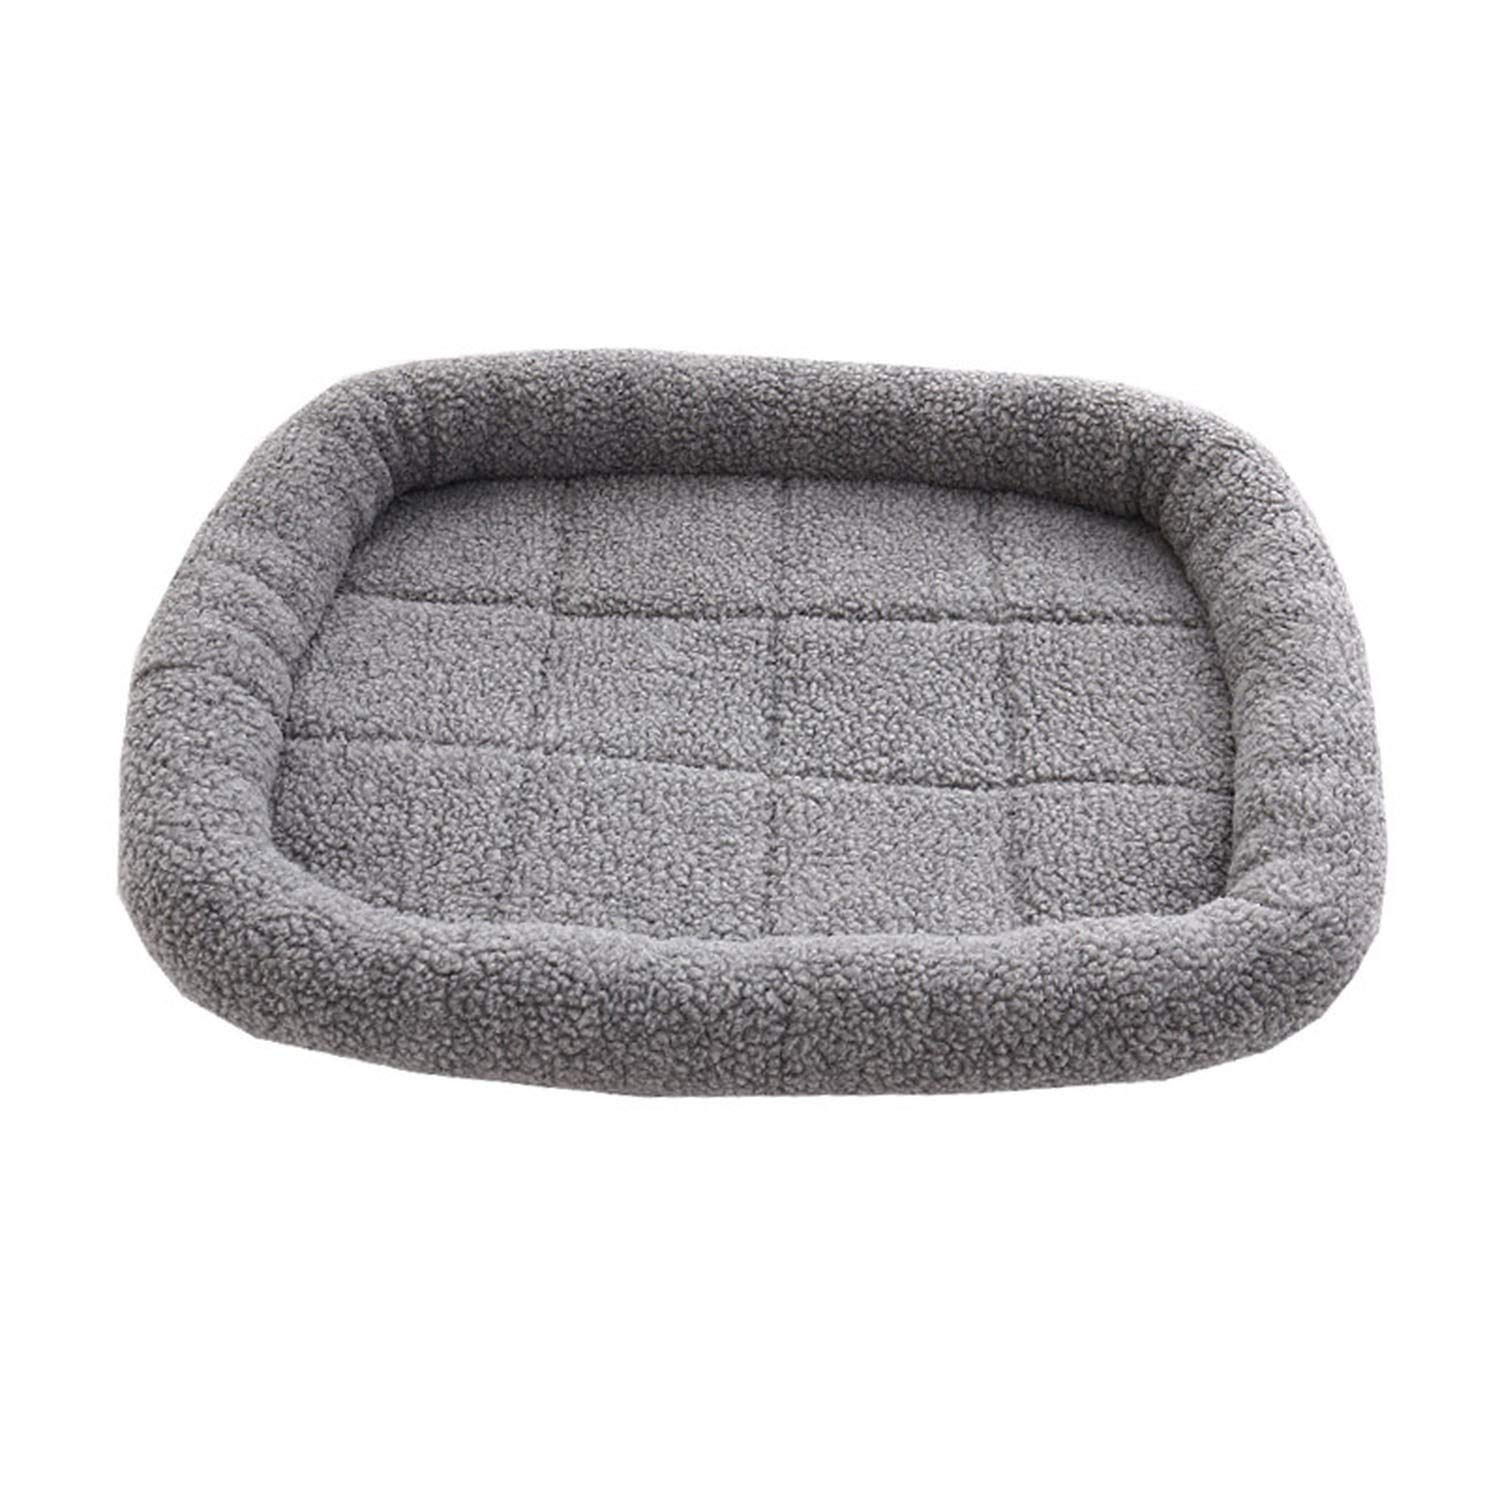 Grey S 50x40cm Grey S 50x40cm Sex Appealing Warm Fleece Dog Bed Soft Sherpa Cotton Dog Mat Comfortable Solid Pet Bed for Dog and Cat Dog Kennel Drop Shipping,Grey,S 50x40cm